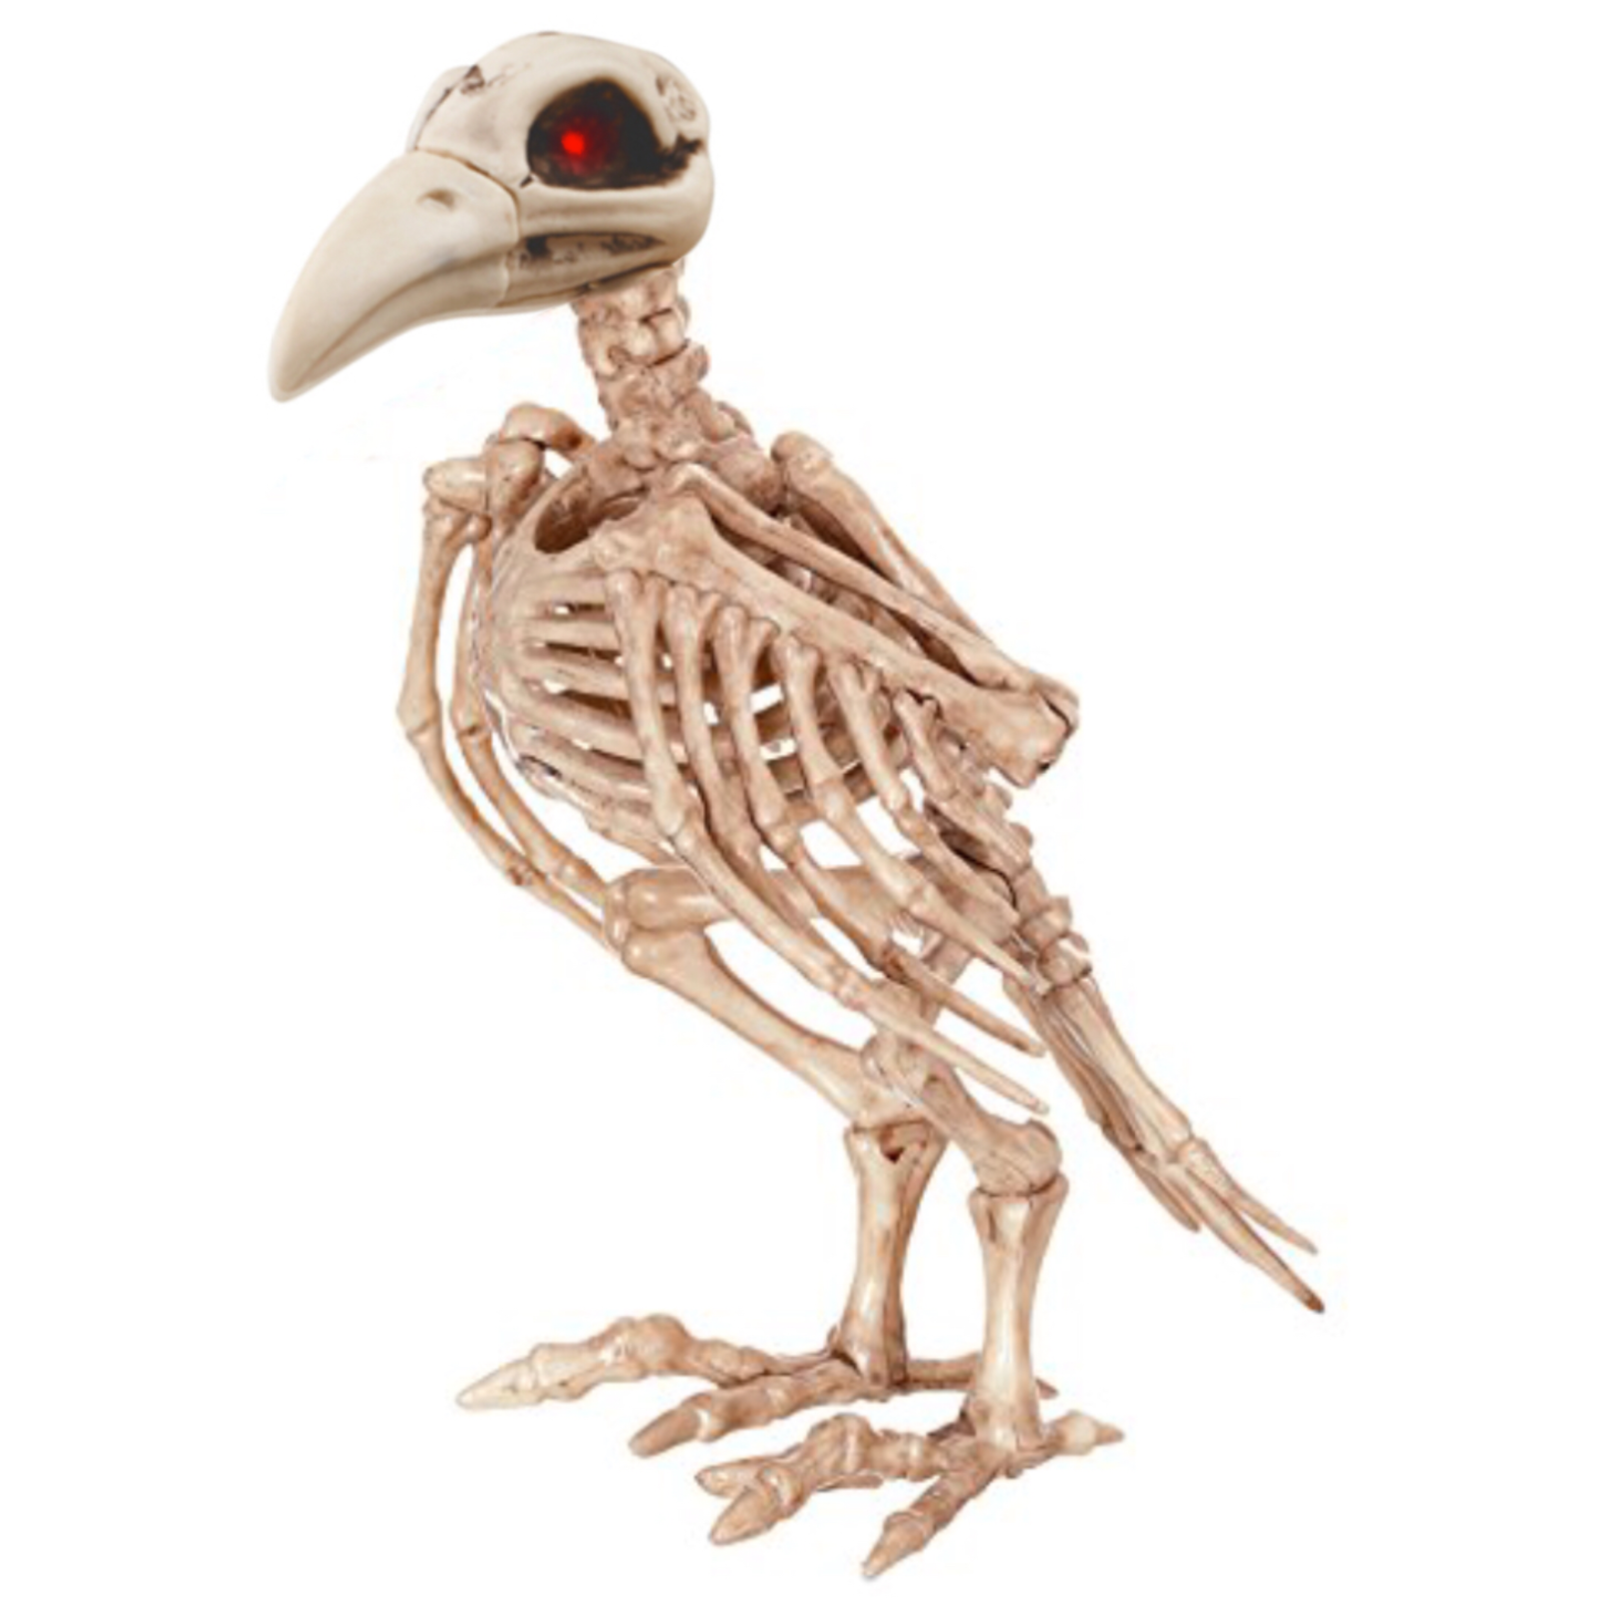 Crow with Light up Eye - Buy Online Only